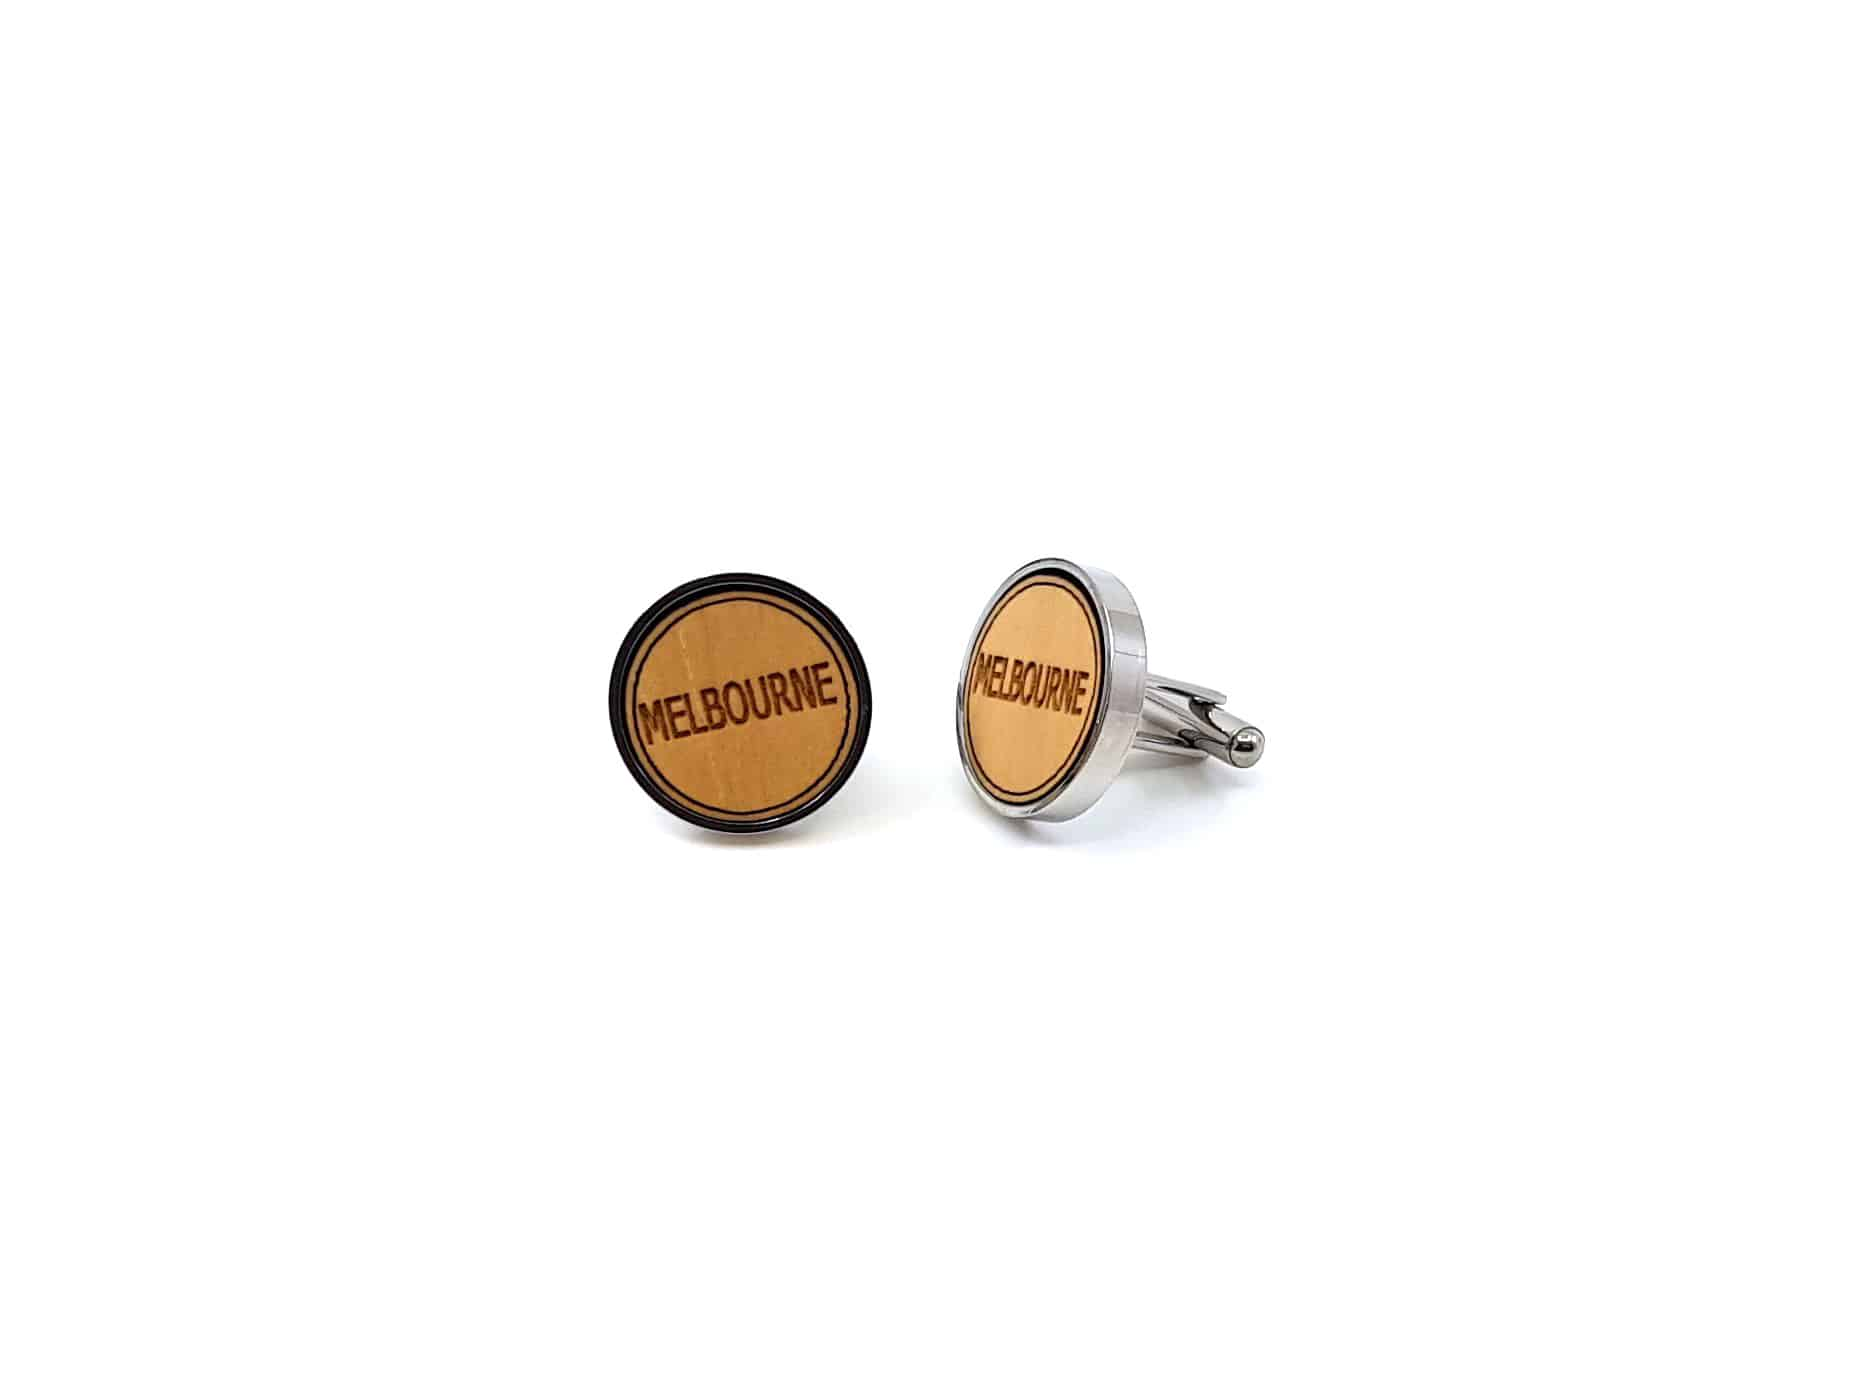 Round stainless steel cufflinks with a Eucalytpus wood insert and Melbourne word.